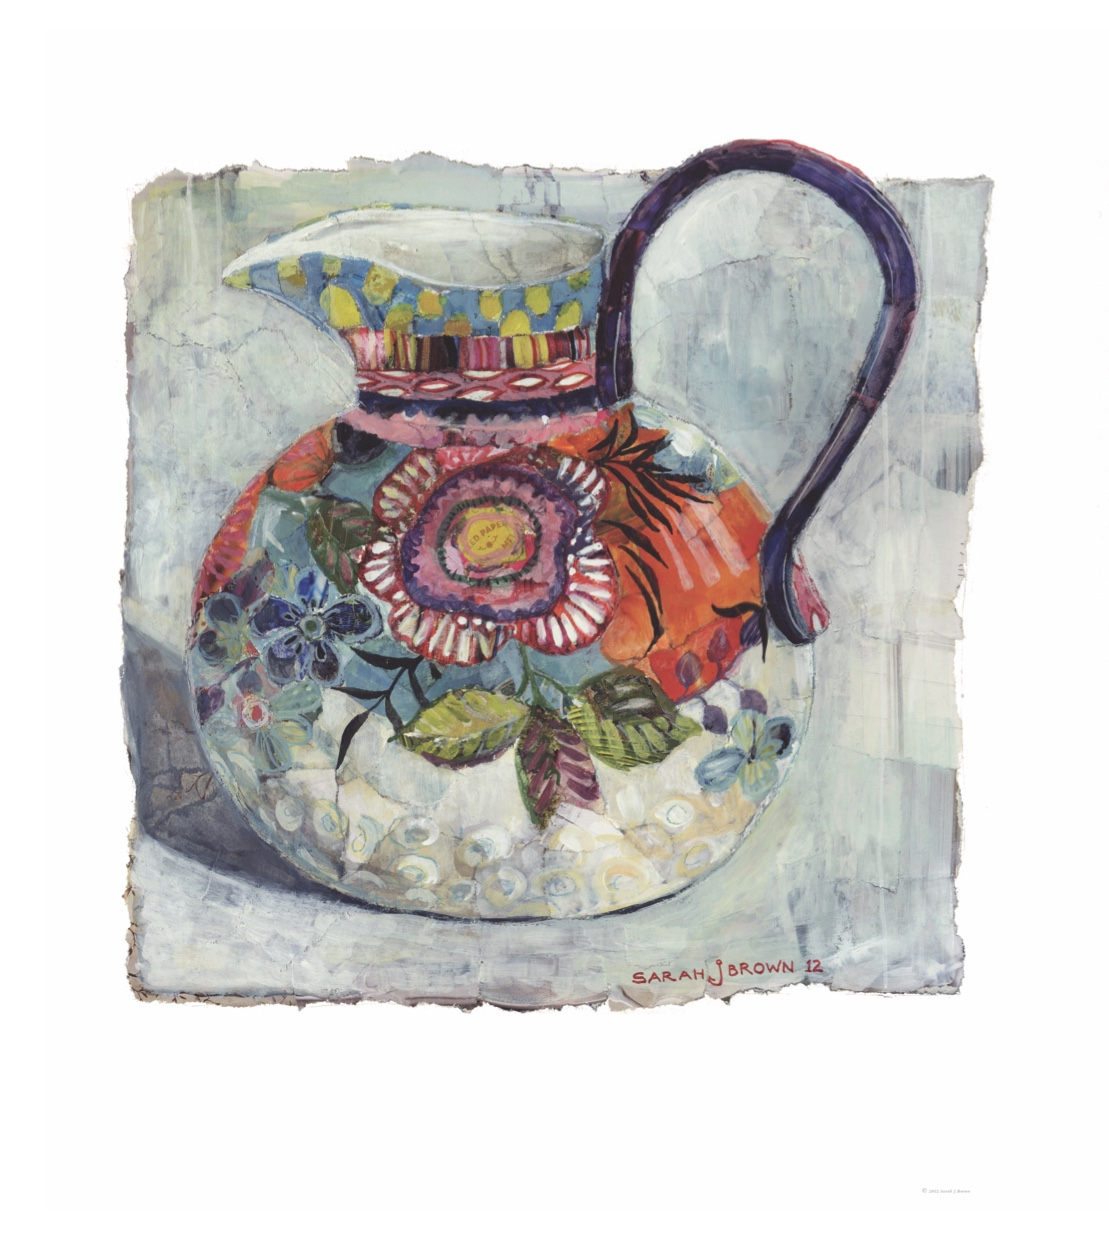 A Painter's Jug